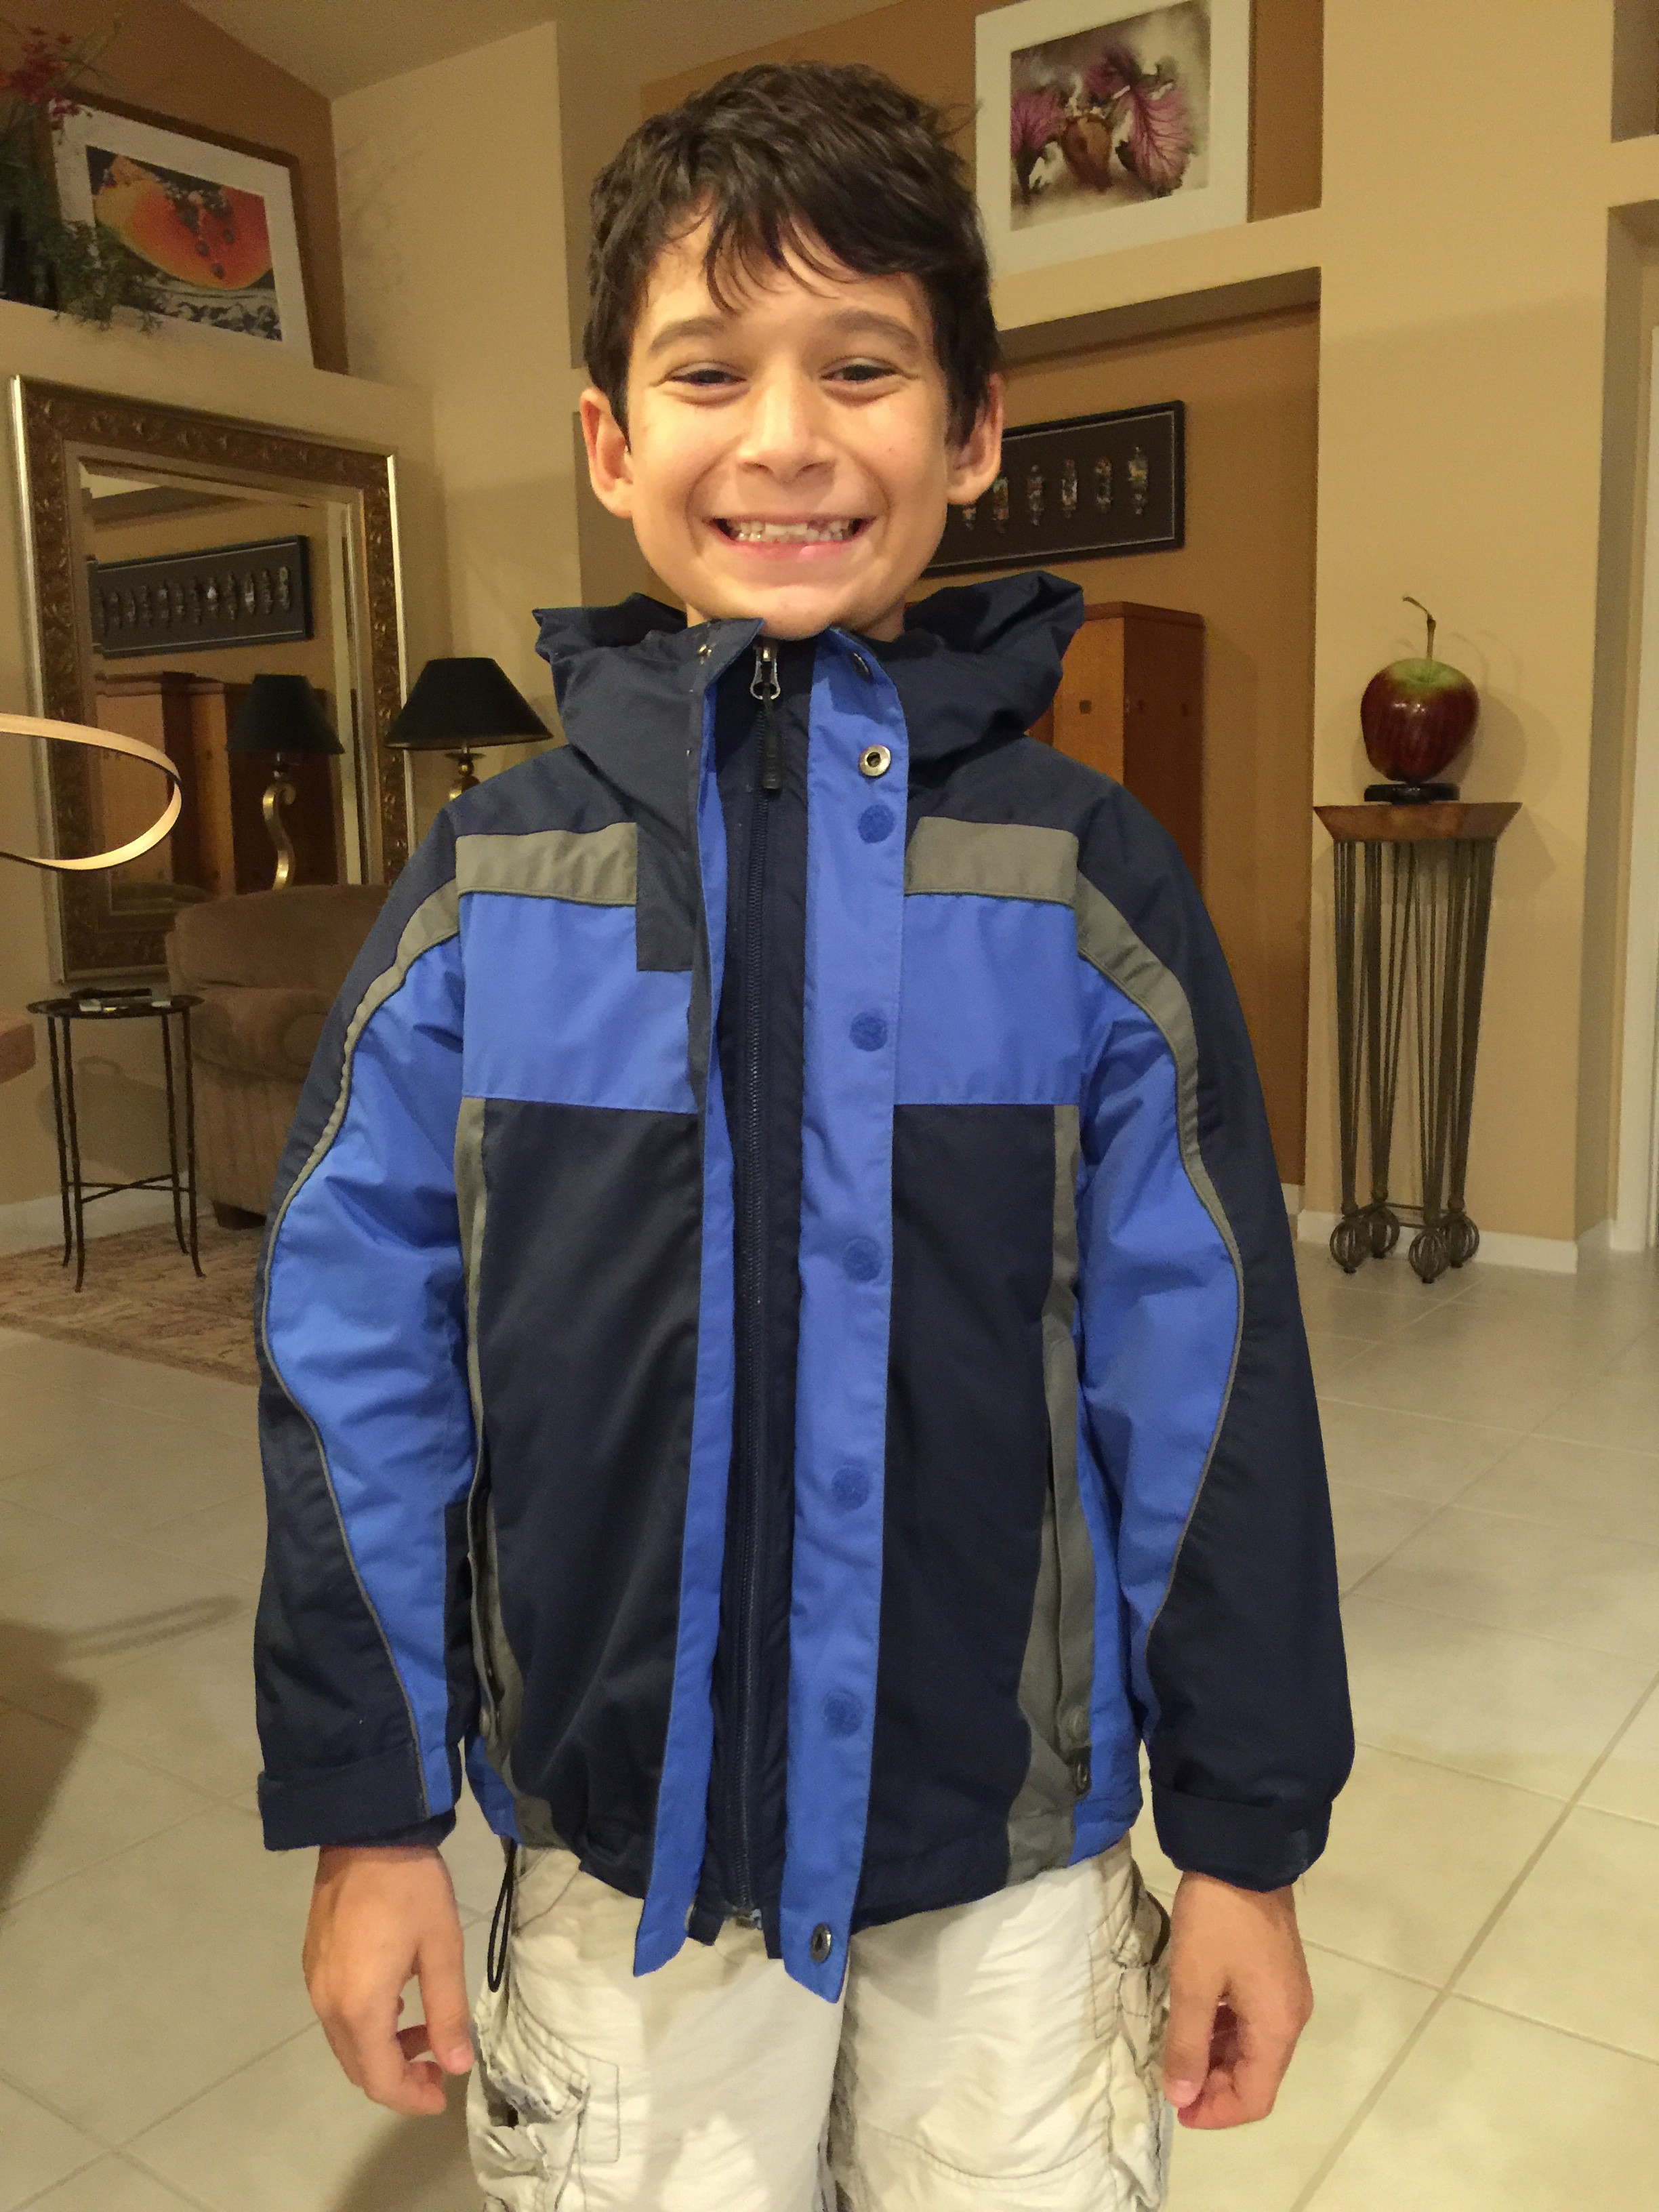 Here, my sweet friend Sammie wears his coat one last time before sending it to Kenya where it will help a boy in need.